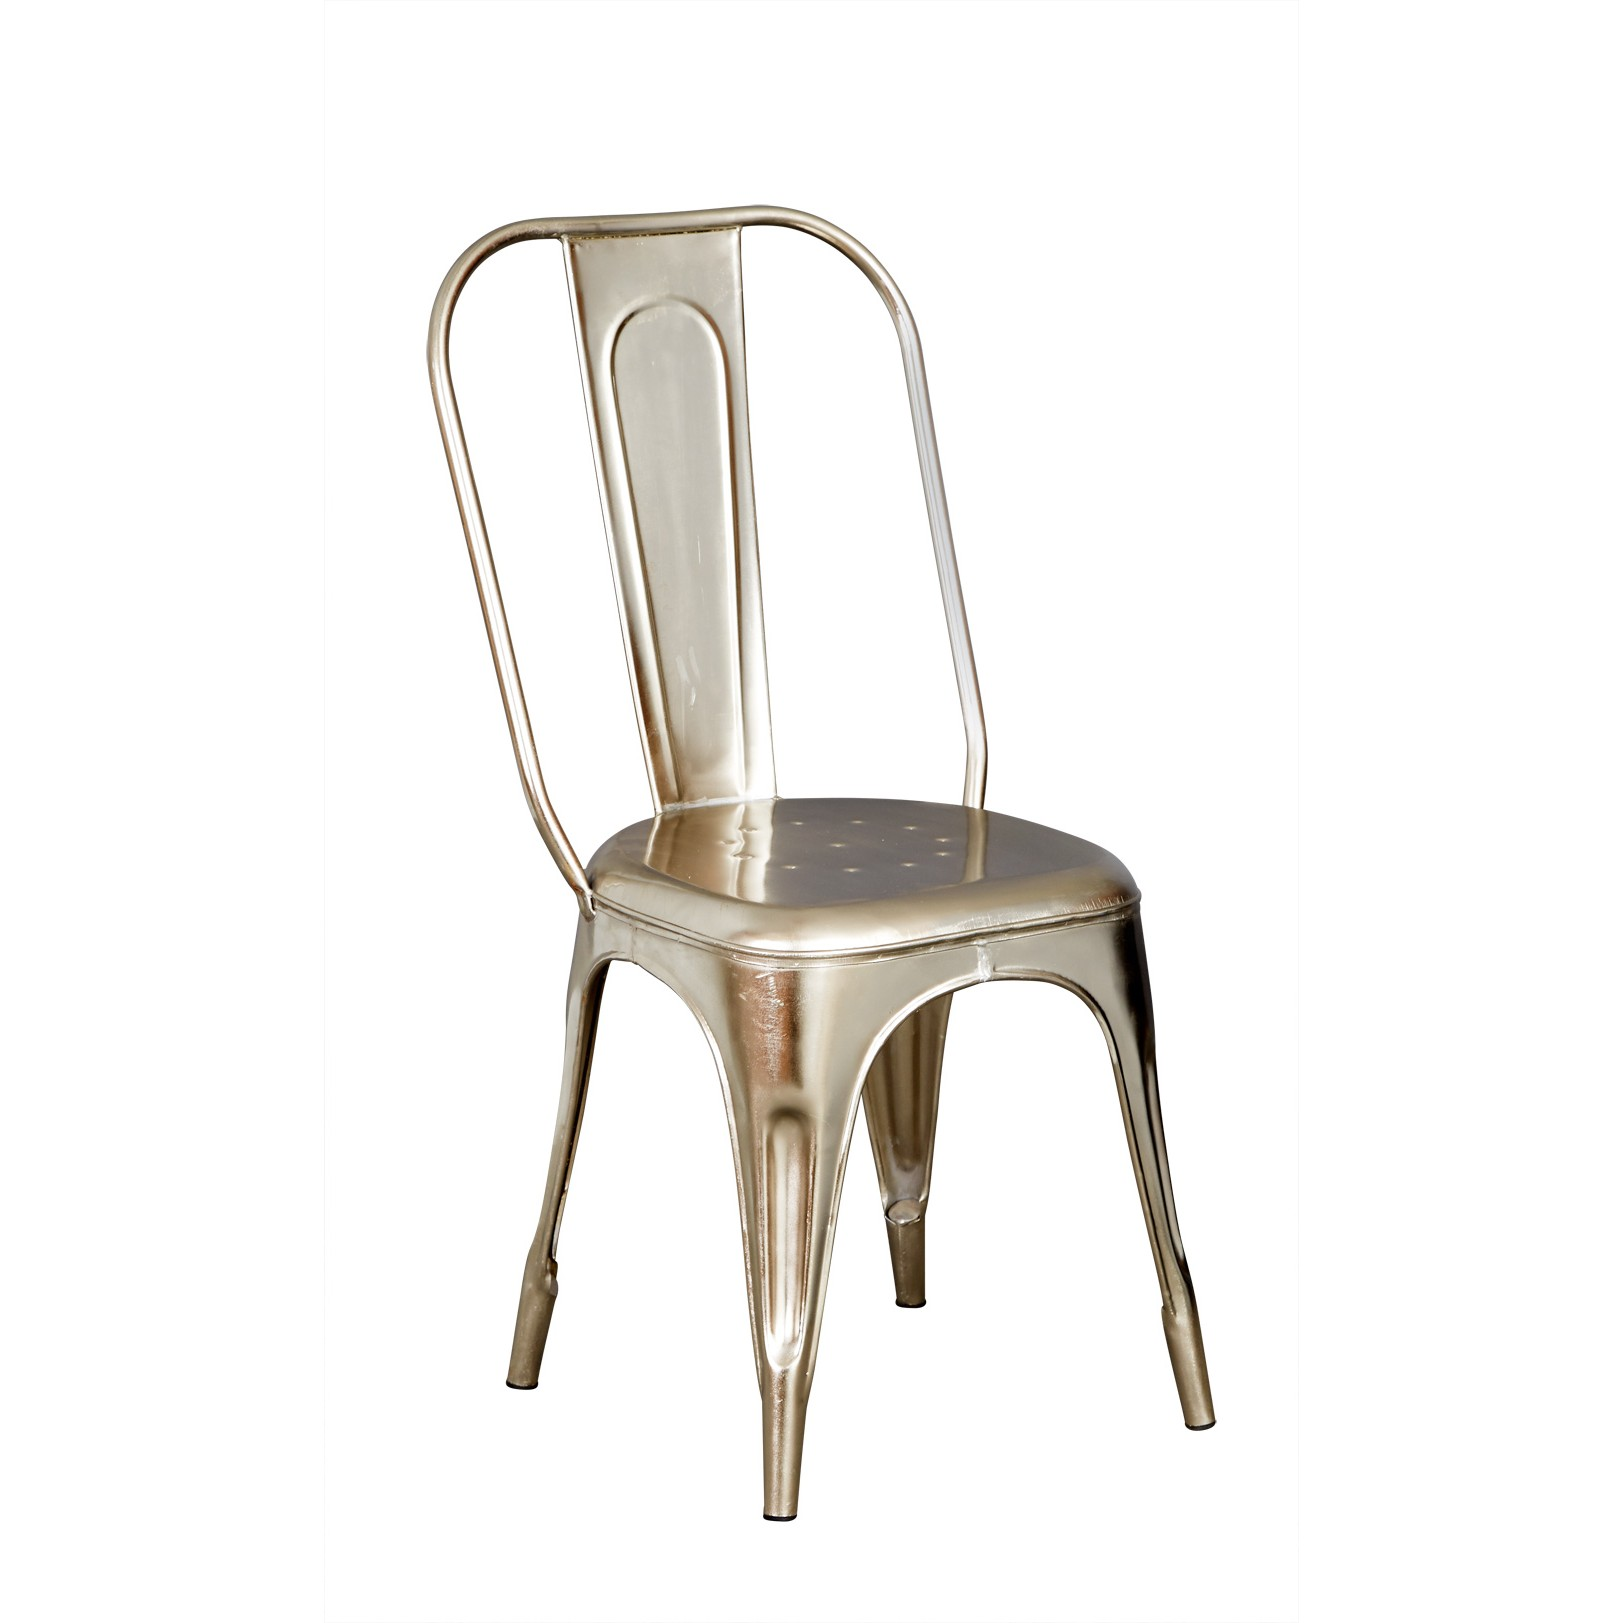 Cosmo Industrial Silver Metal Chair Sold in Pairs : id332 from www.indianhub.co.uk size 1623 x 1623 jpeg 138kB